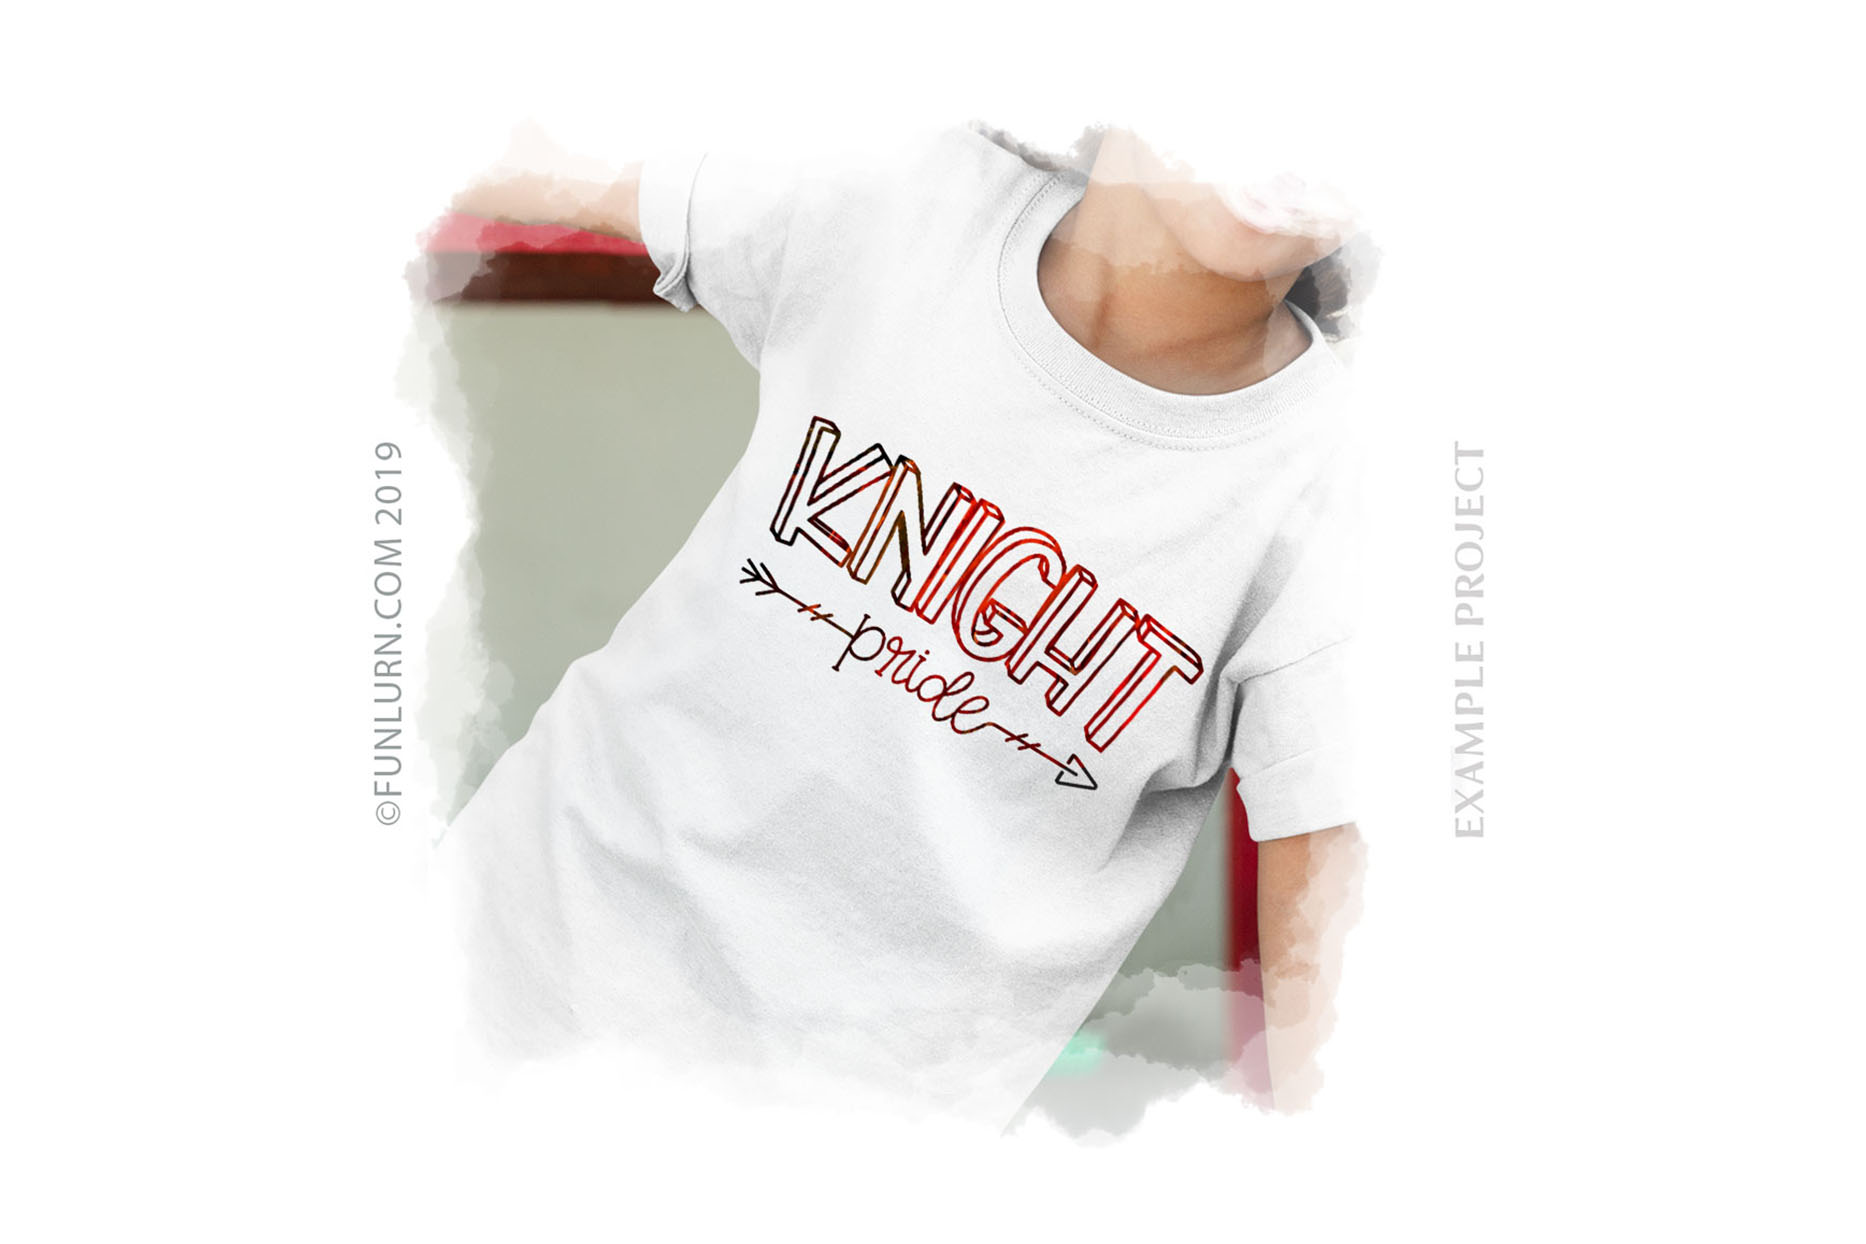 Knight Pride Team SVG Cut File example image 3